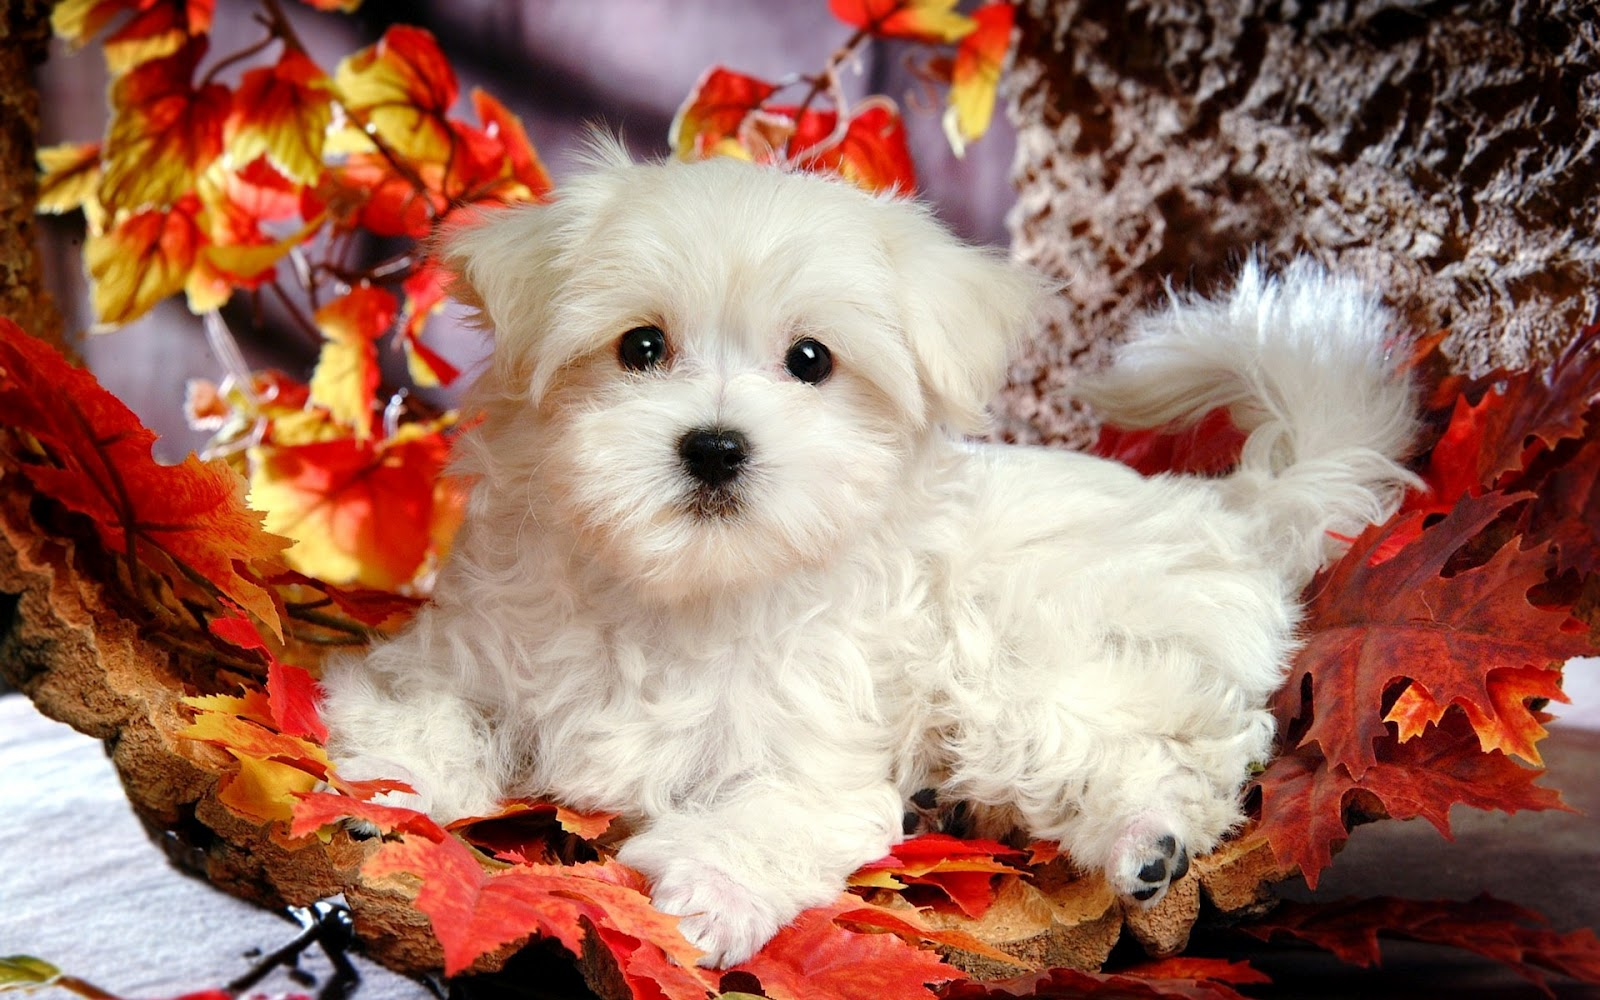 Fall Backgrounds with Puppies wallpaper 1080p